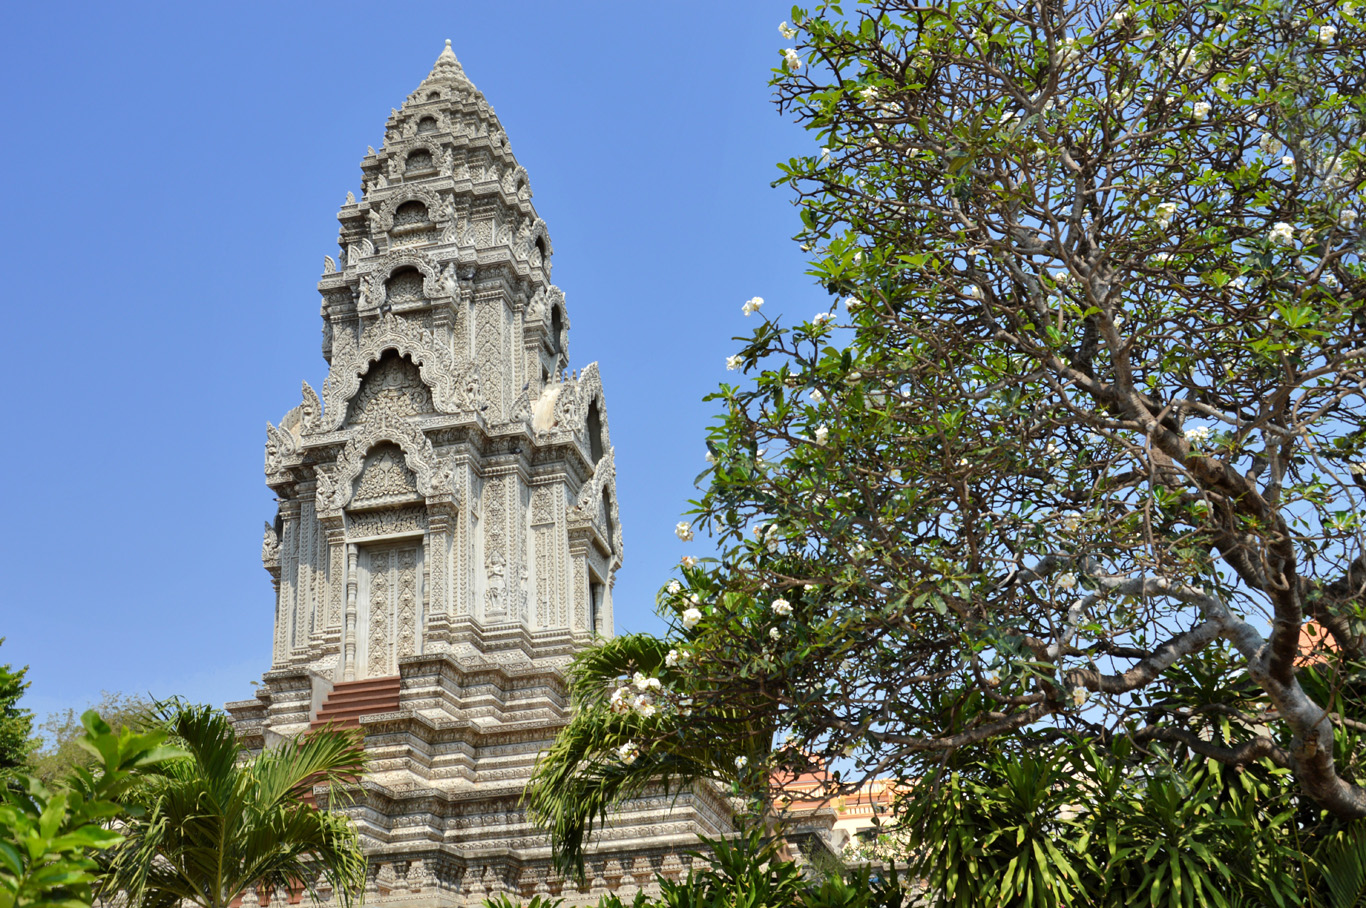 One of the stupas in the temple area